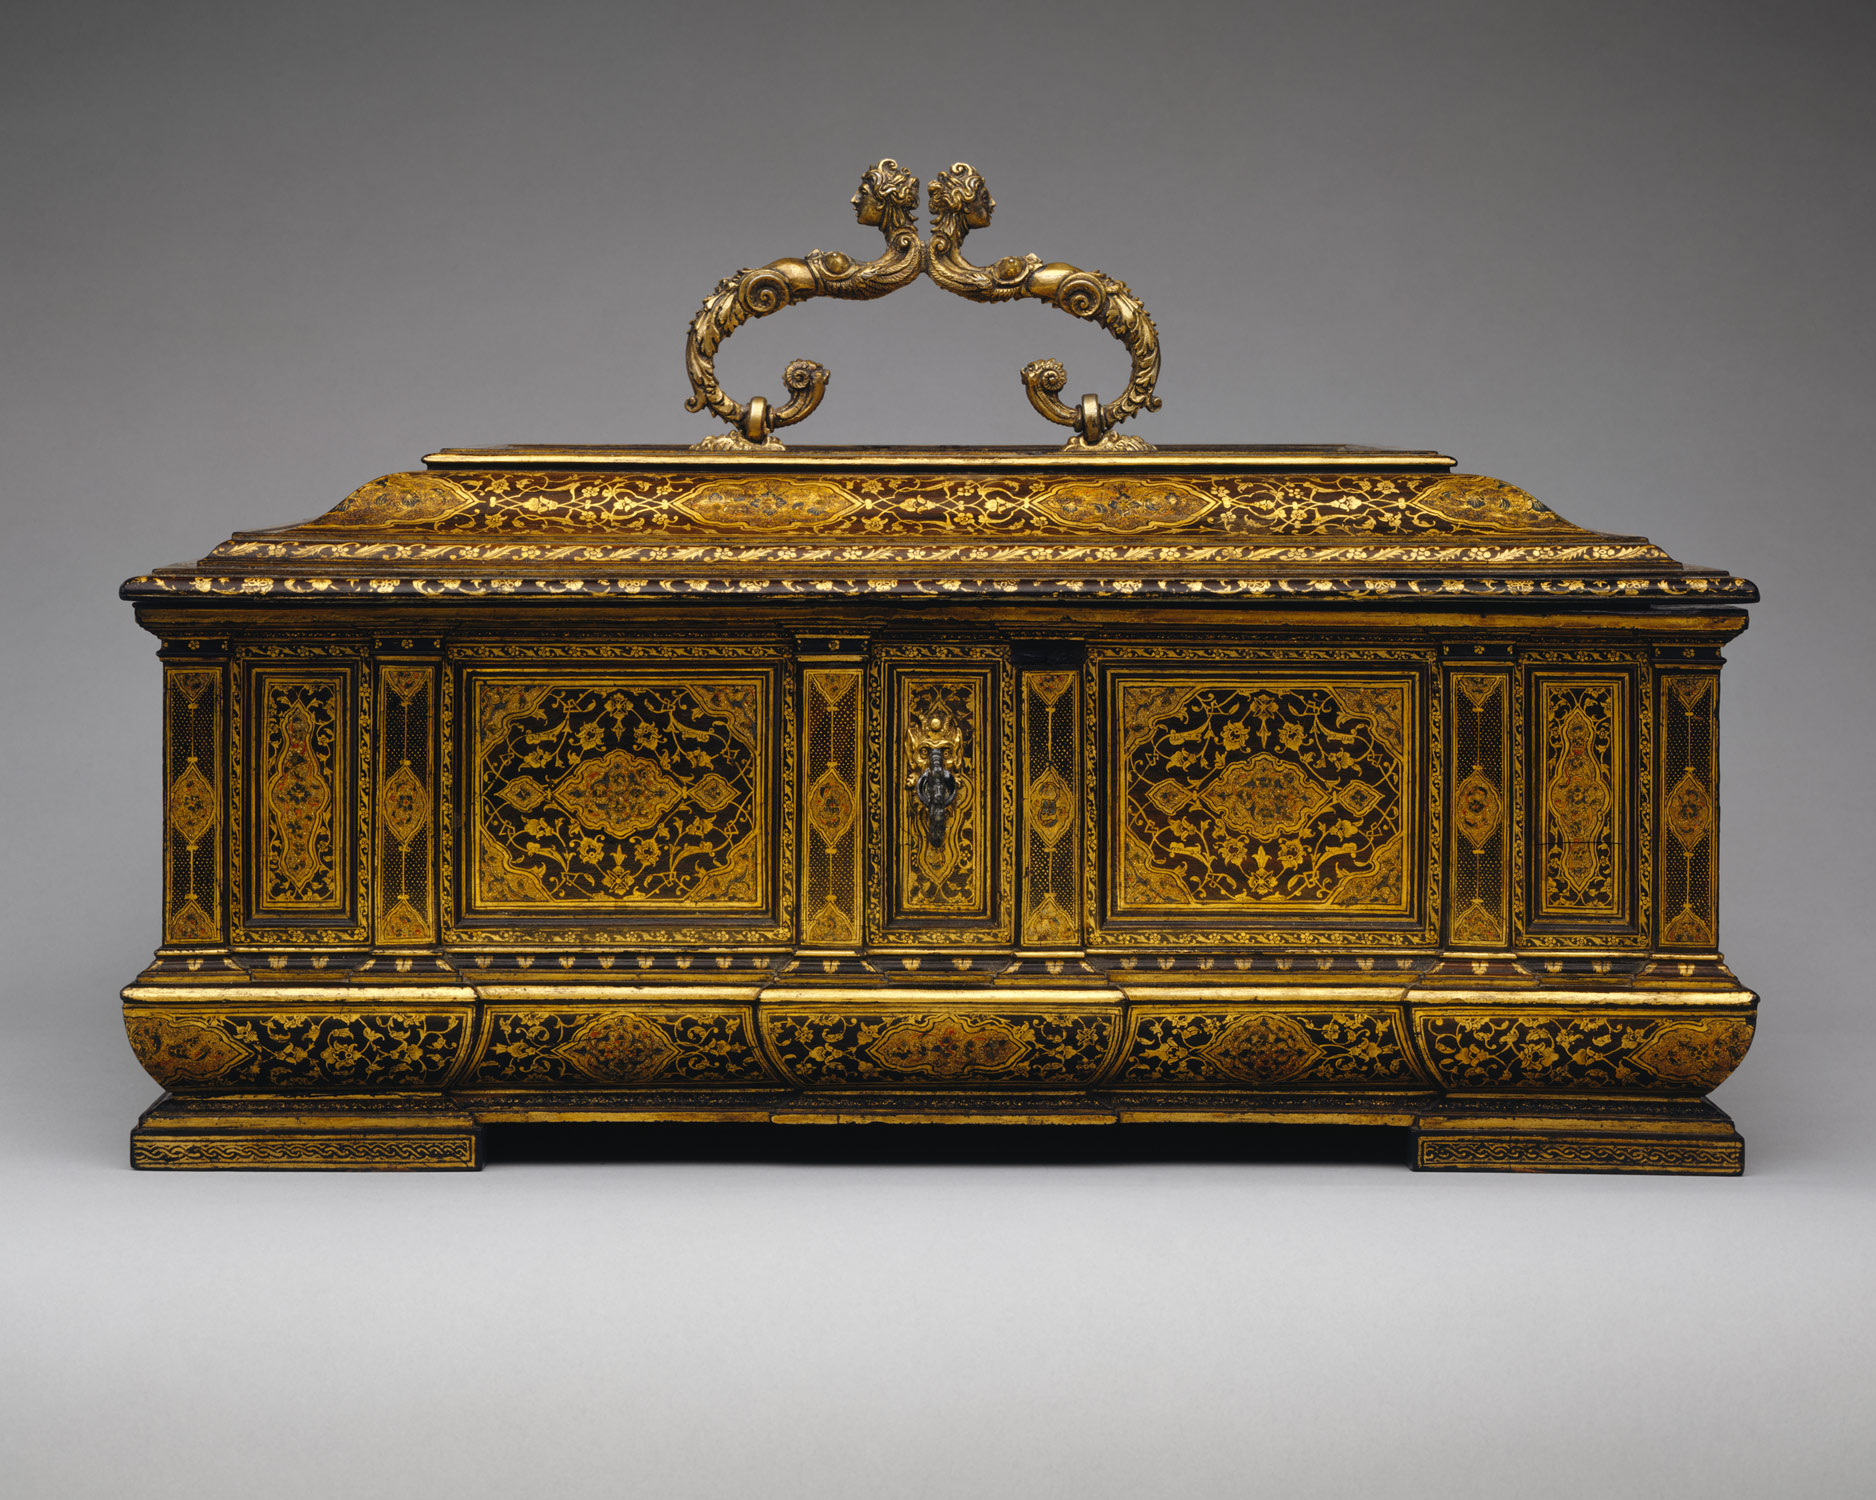 Casket (coffanetto or scrigno)